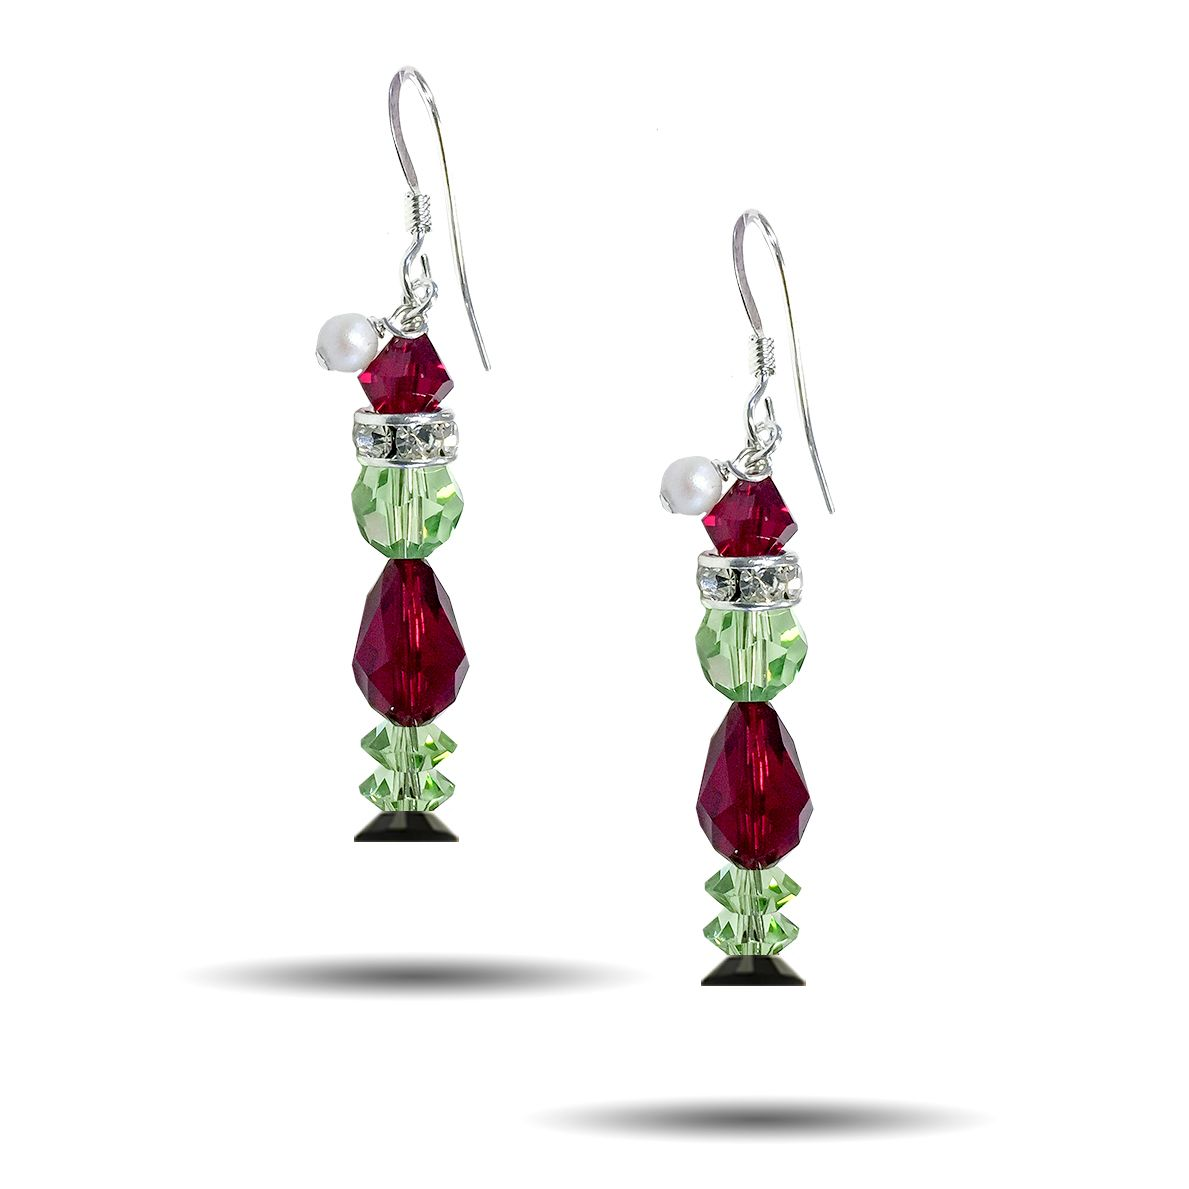 500 Christmas Jewelry Patterns Ideas In 2020 Christmas Jewelry Jewelry Patterns Beaded Jewelry